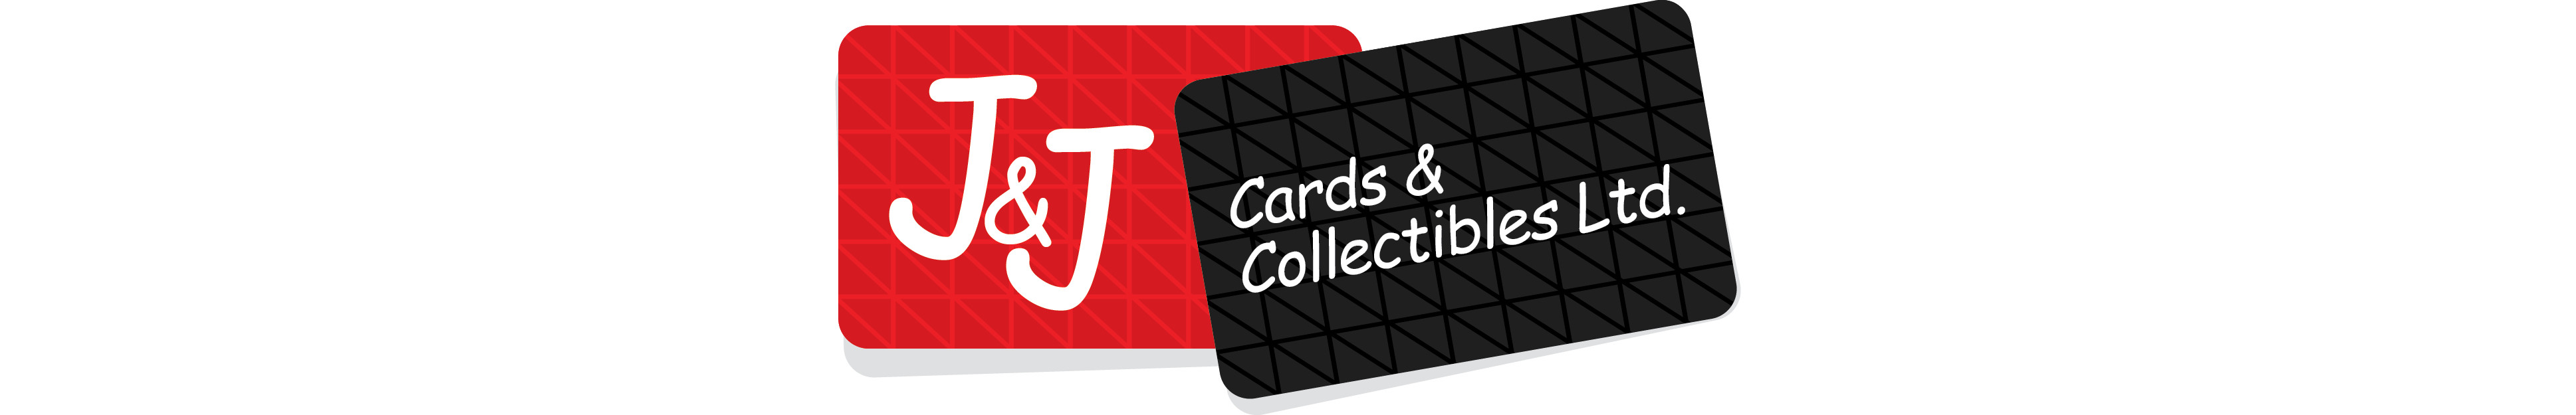 J&J Cards & Collectibles Ltd